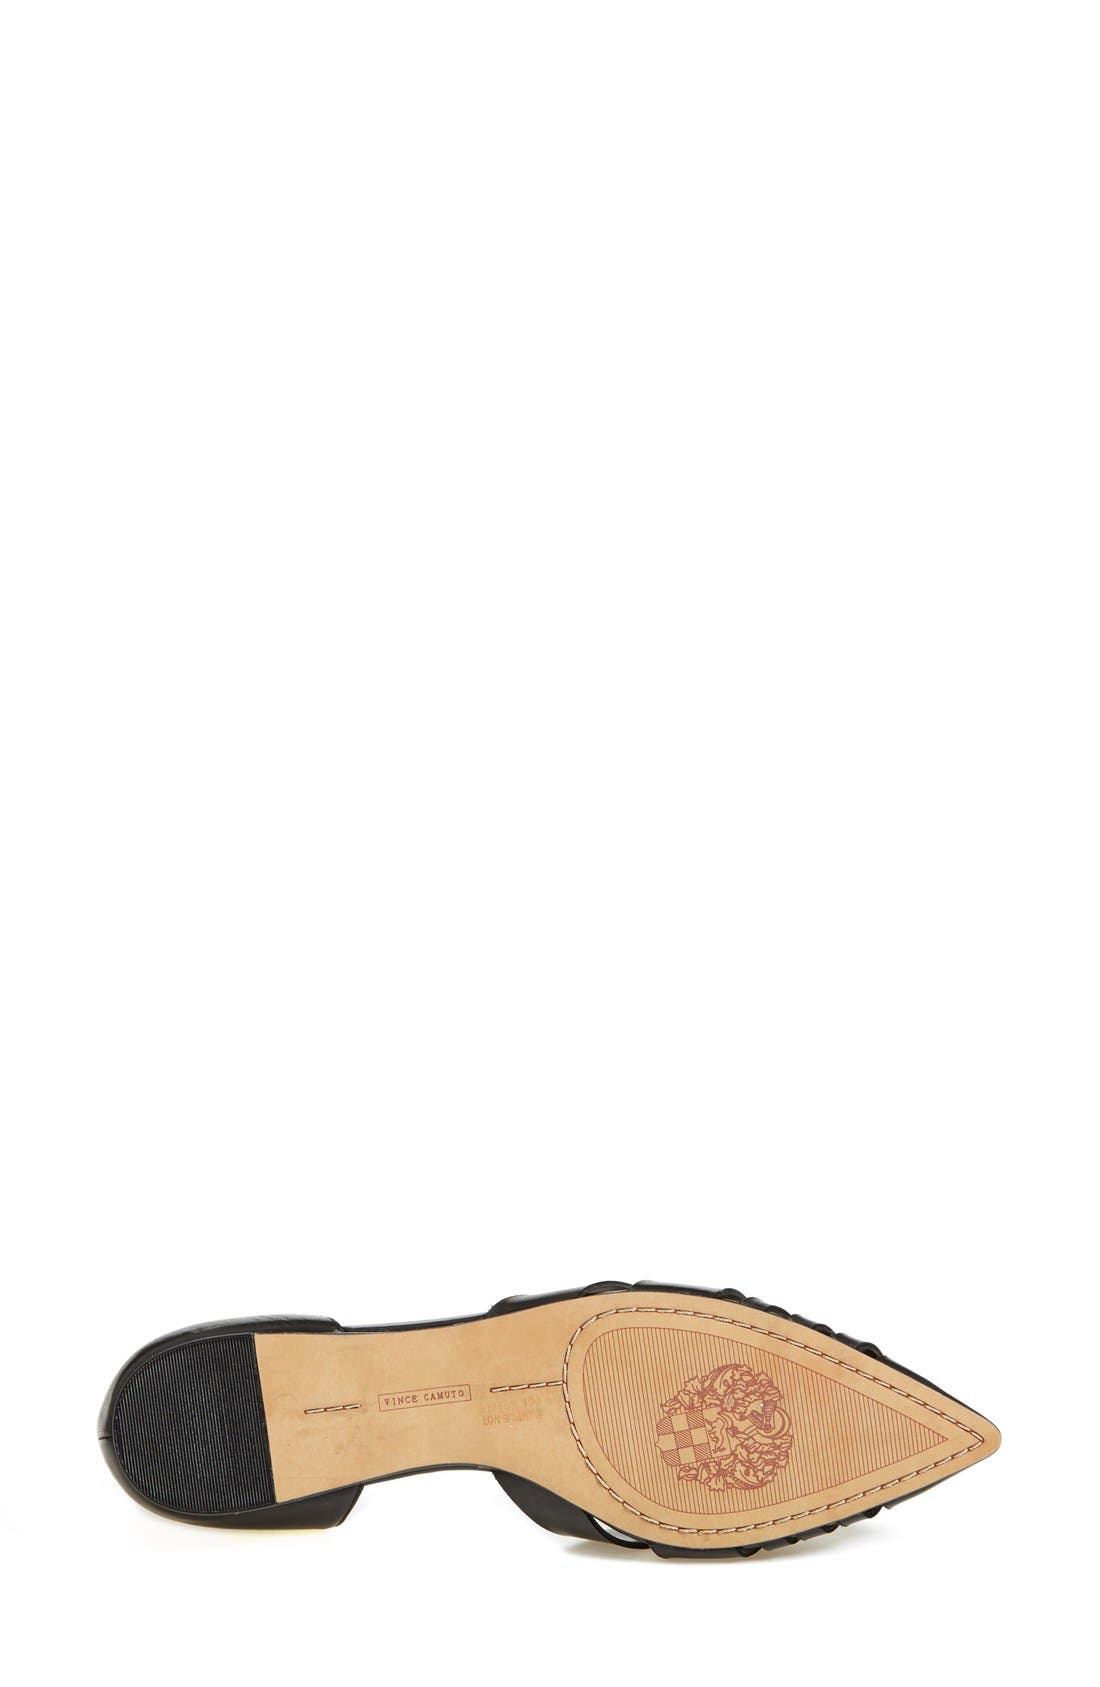 'Hallie' Woven Leather d'Orsay Flat,                             Alternate thumbnail 4, color,                             001